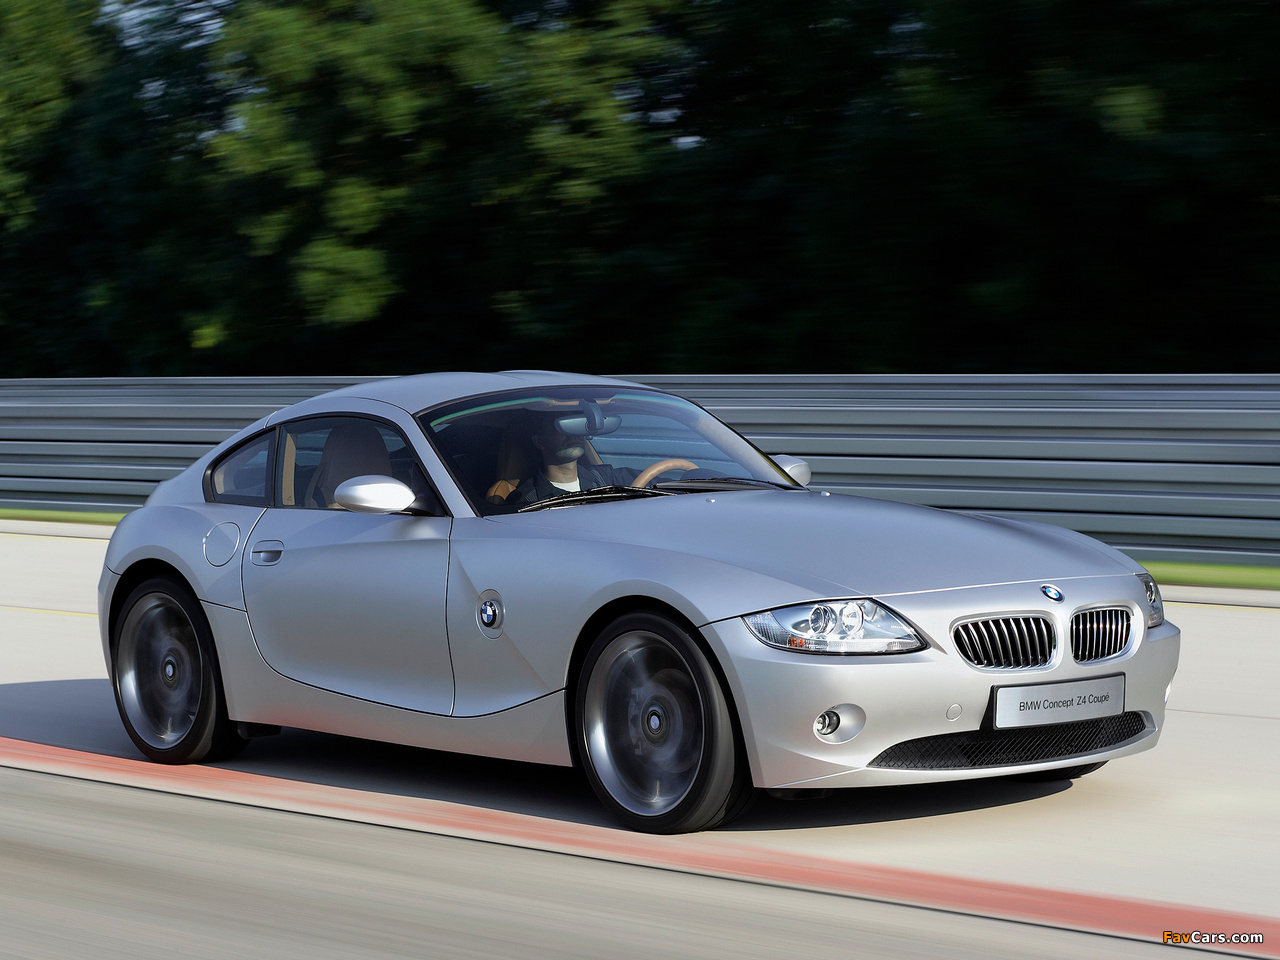 Photos Of Bmw Z4 Coupe Concept E85 2005 1280x960